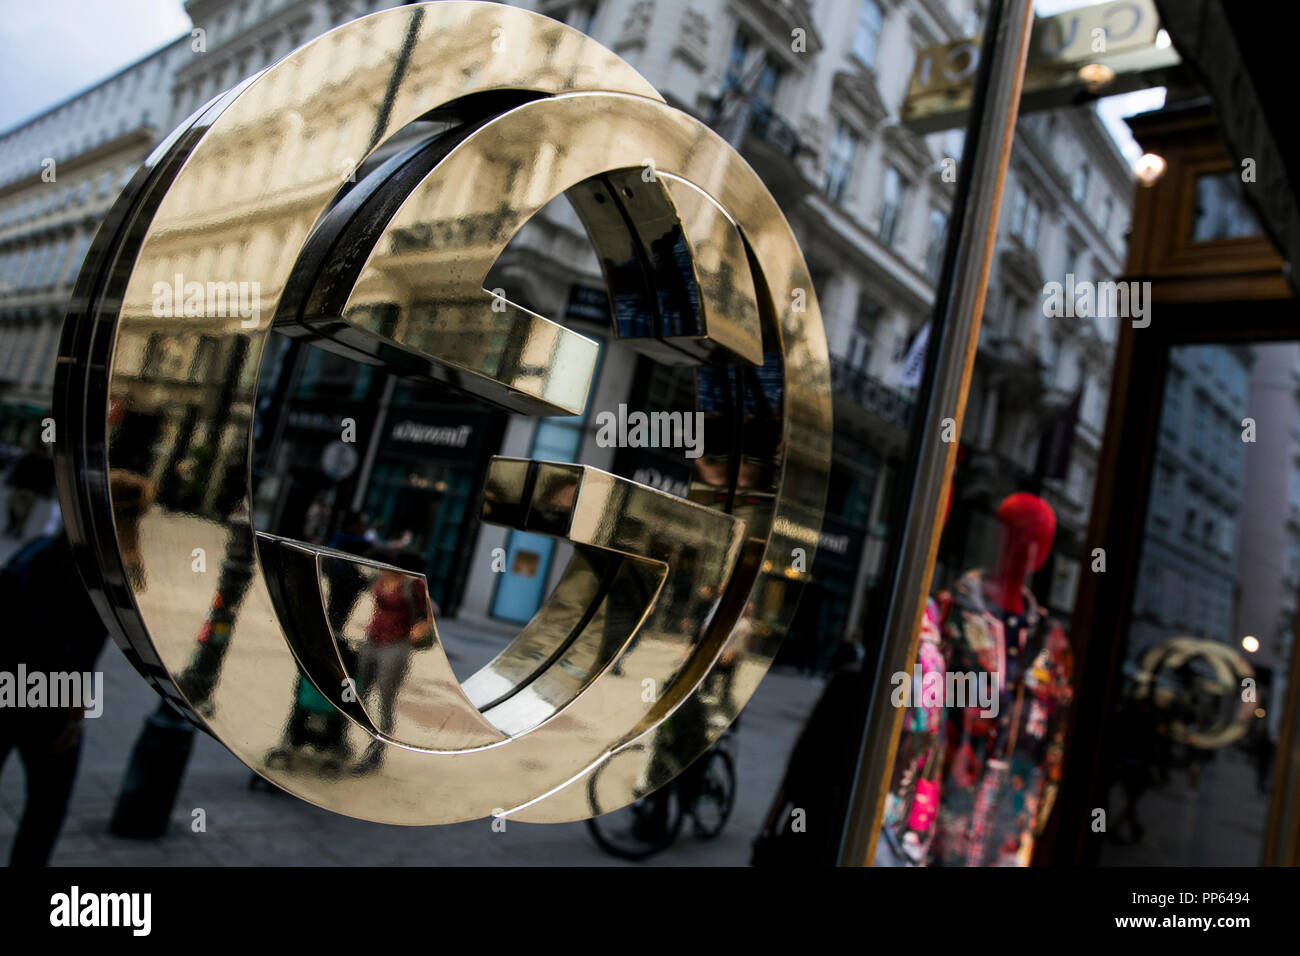 53ce5a7f312 Gucci Storefront Stock Photos   Gucci Storefront Stock Images - Alamy